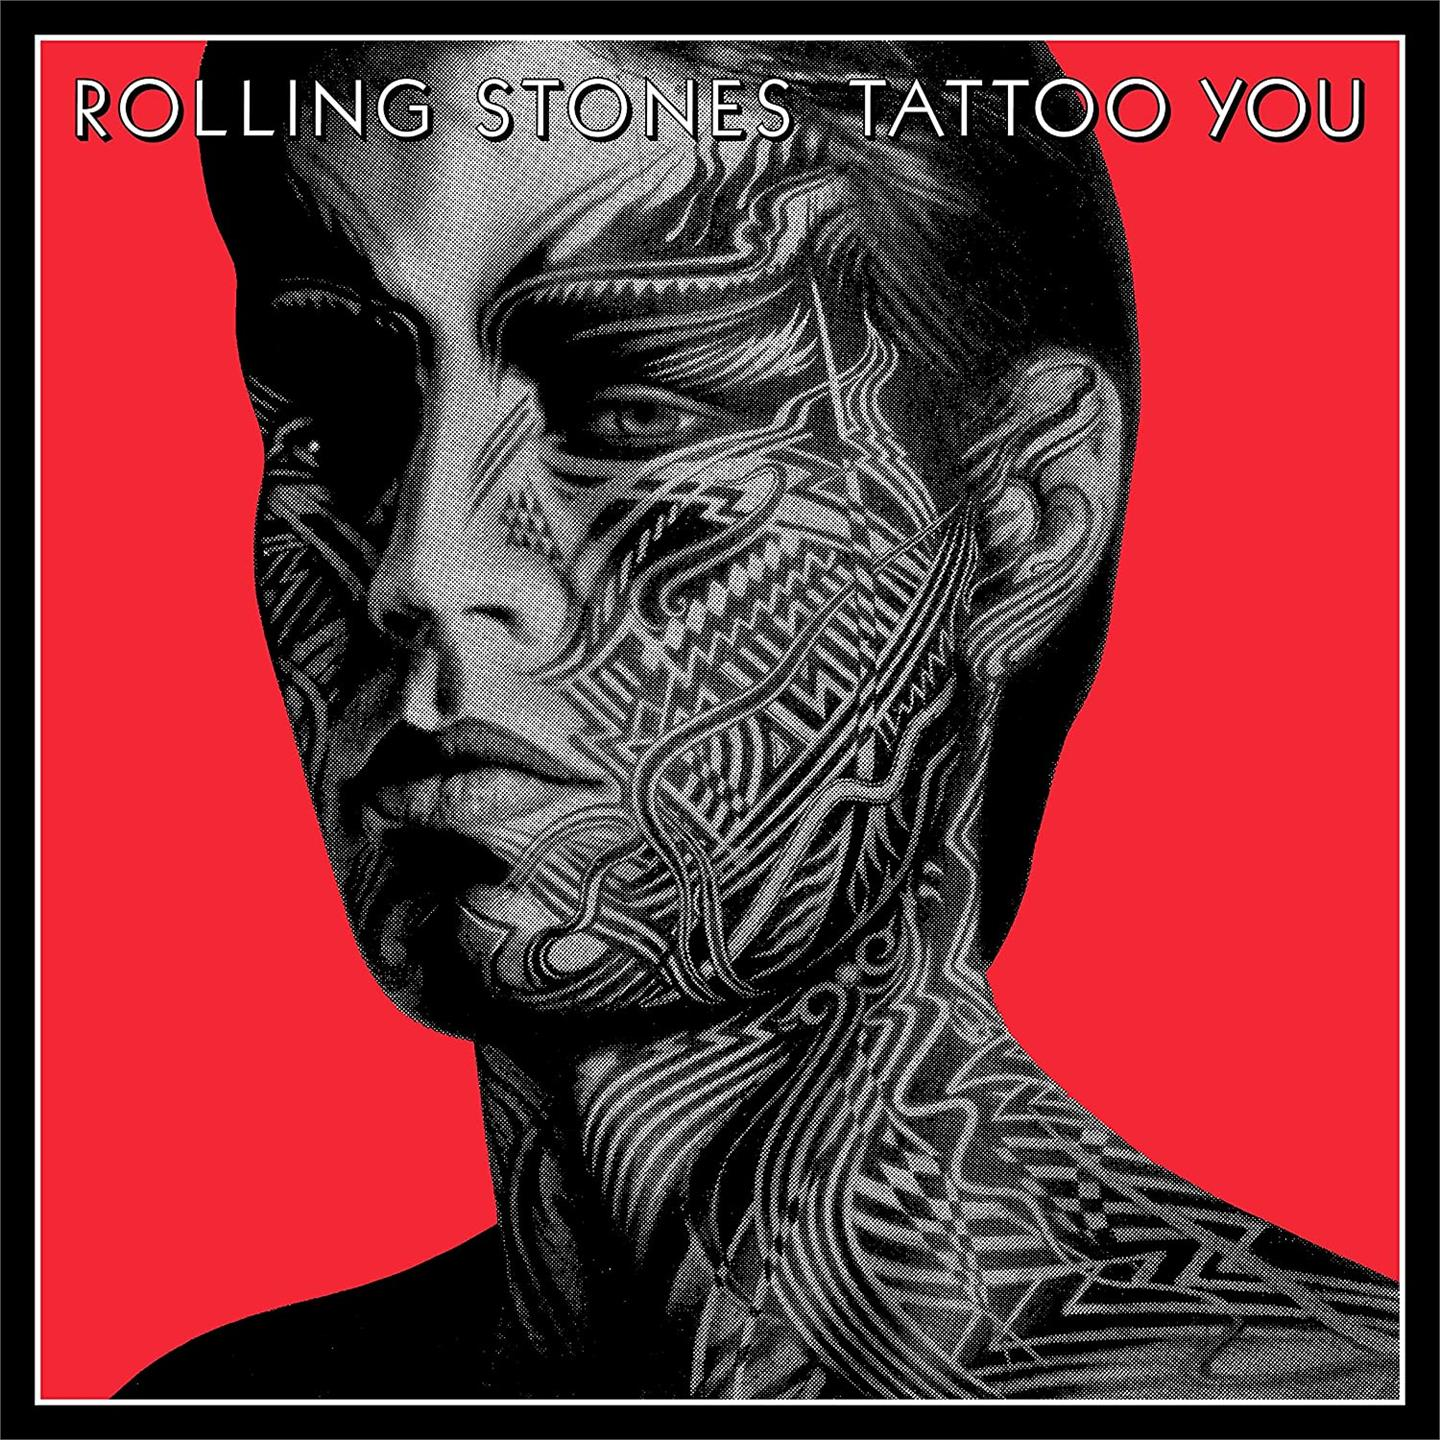 The Rolling Stones - Tattoo You [LP] (Mick Jagger Sleeve)